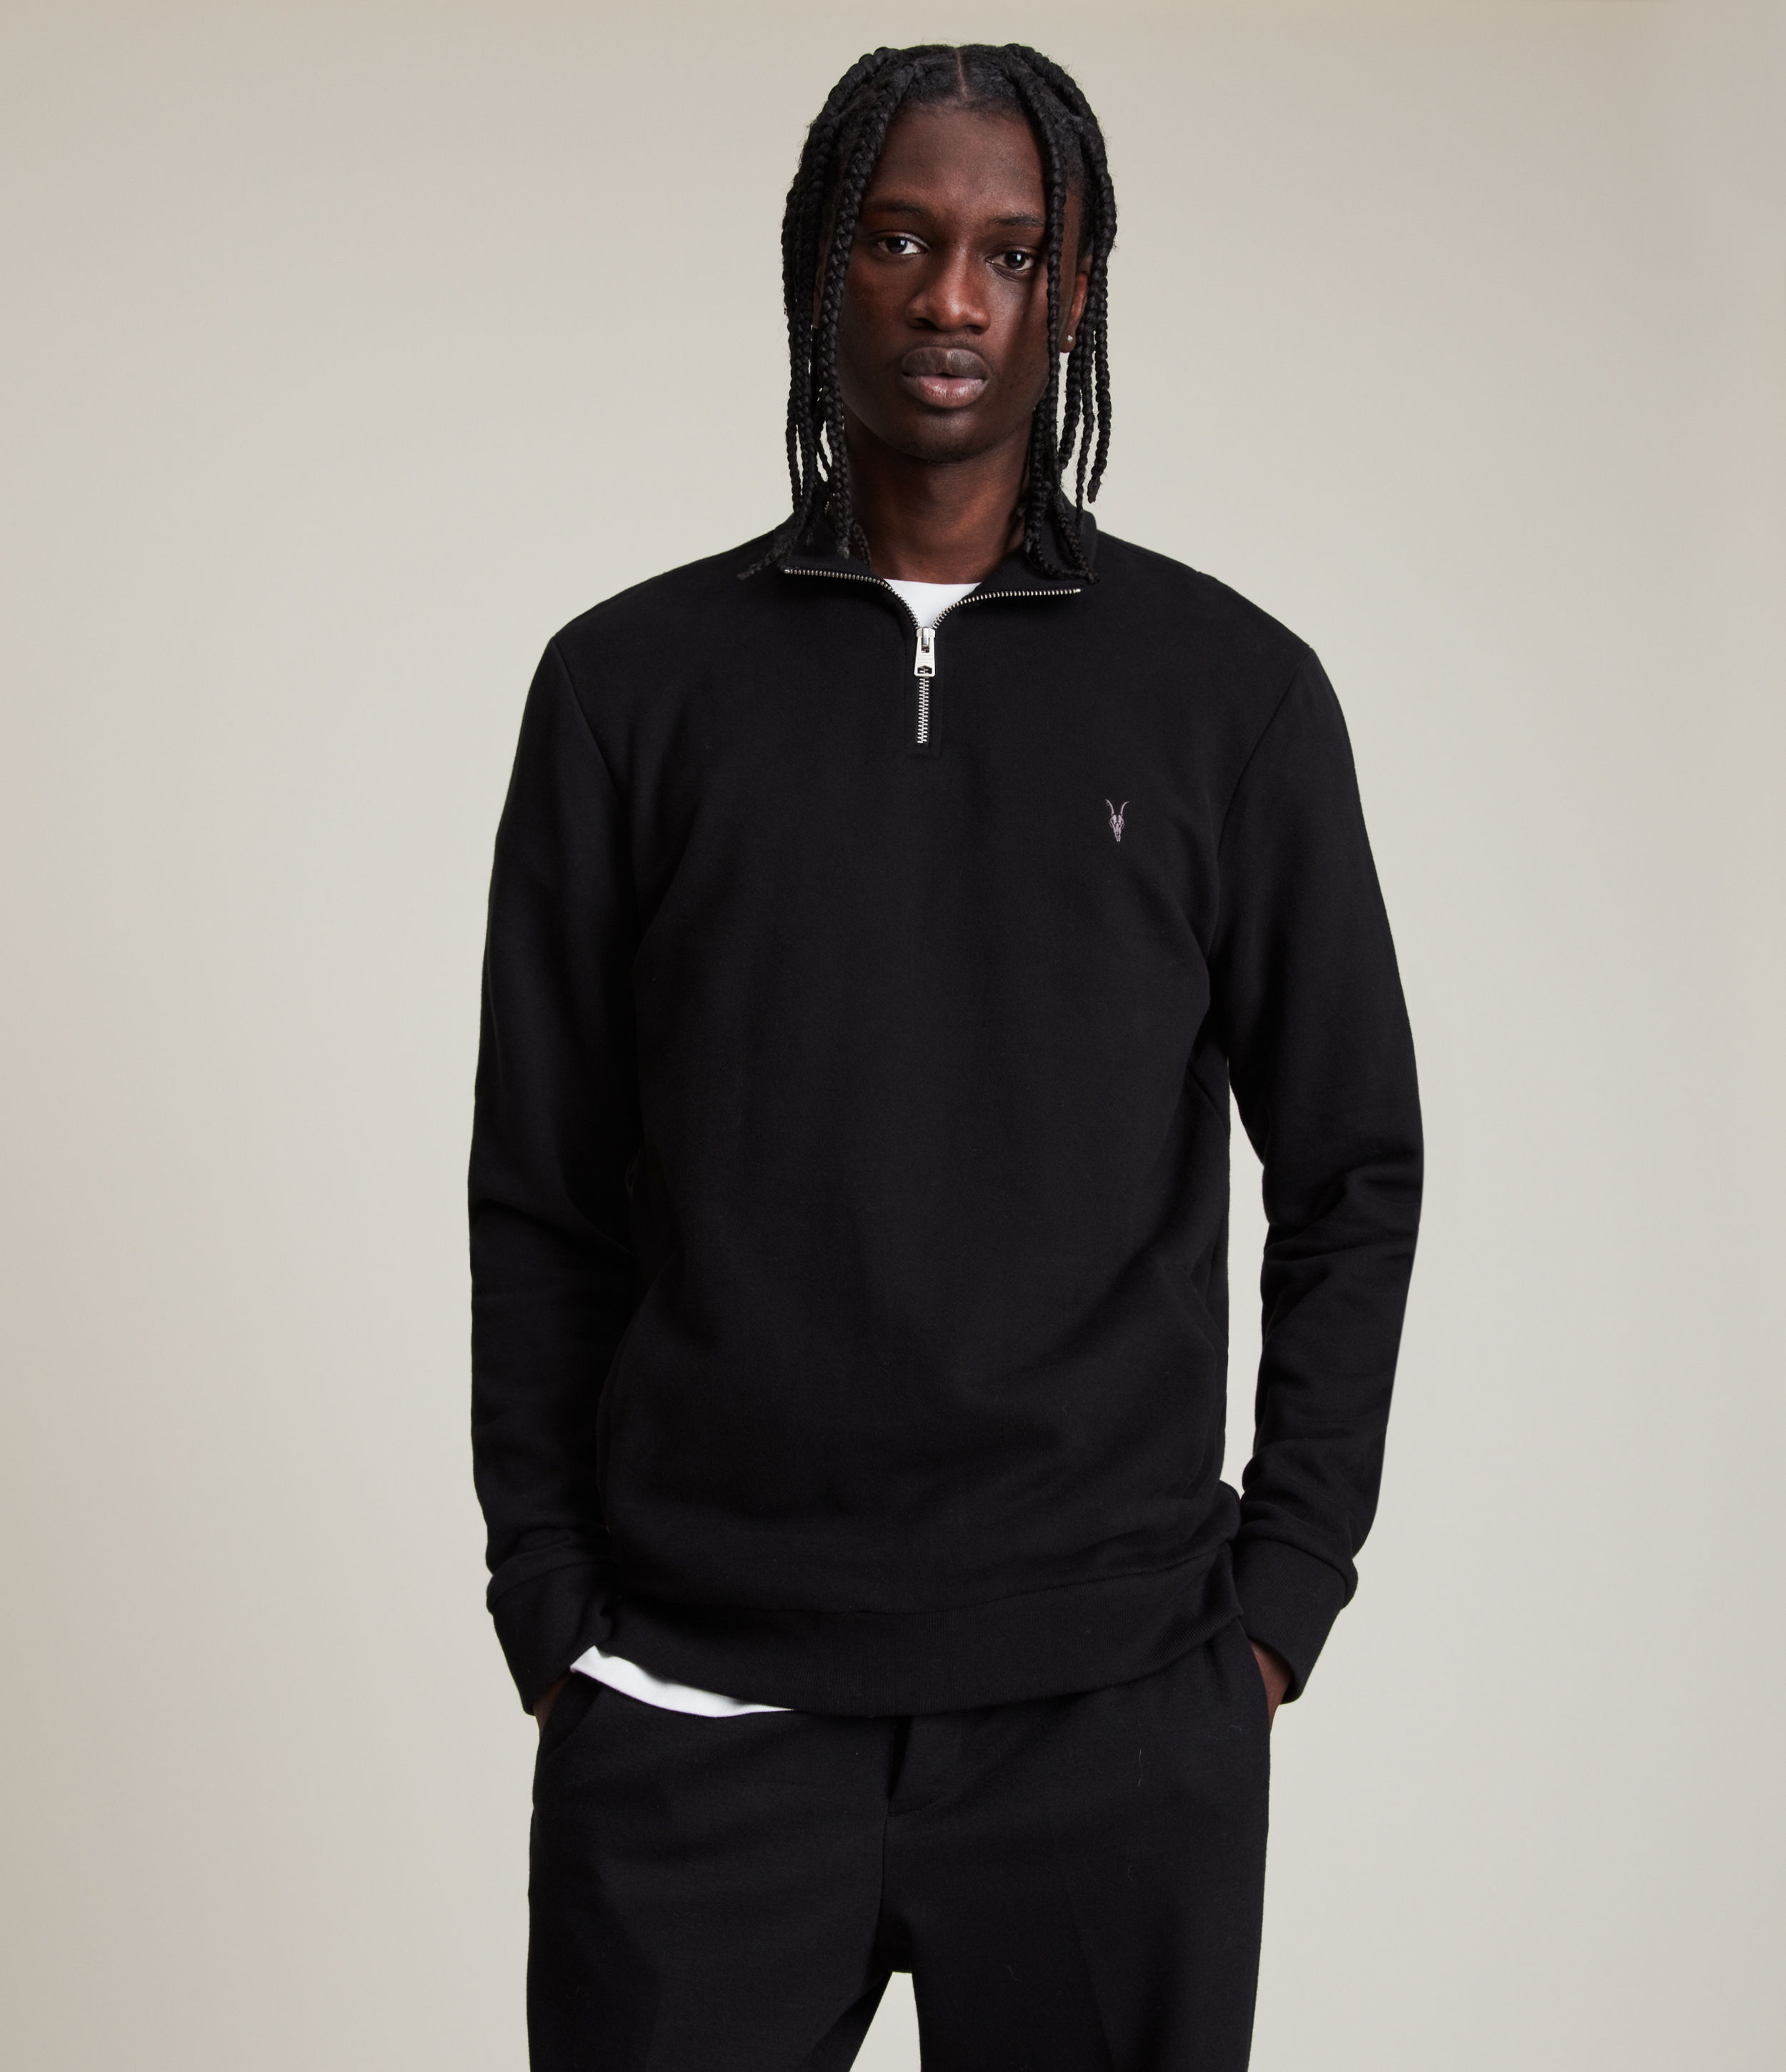 AllSaints Men's Cotton Slim Fit Raven Half Zip Funnel Sweatshirt, Black, Size: S